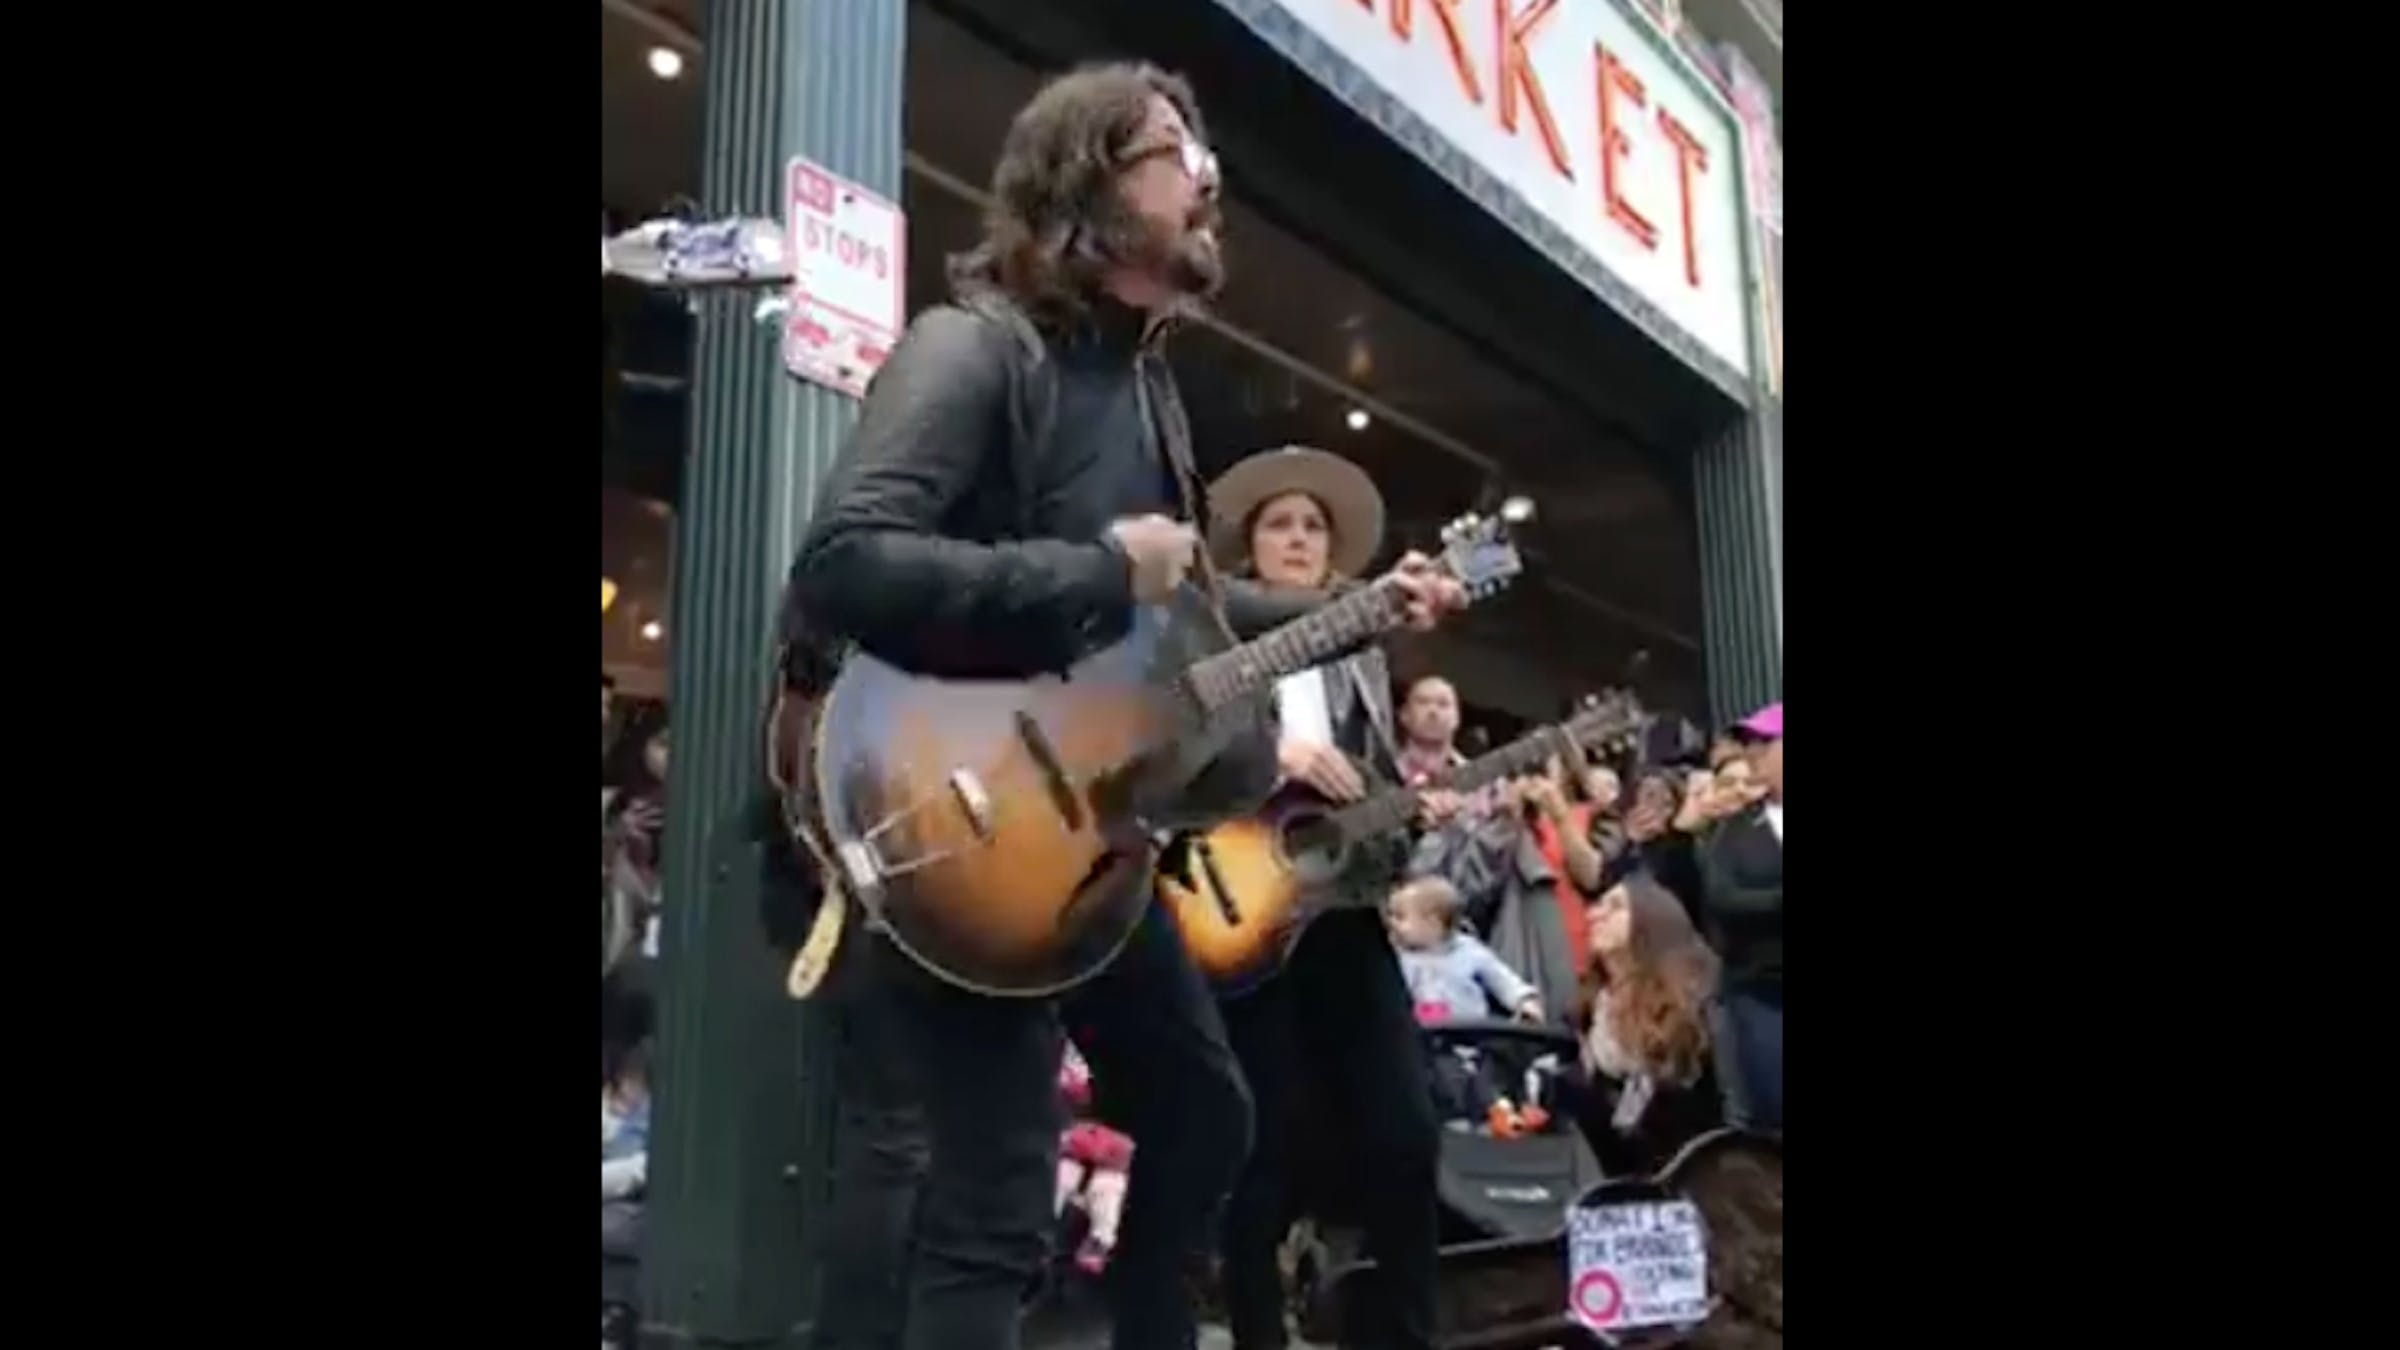 Watch Dave Grohl And Brandi Carlile Go Busking Together In Seattle